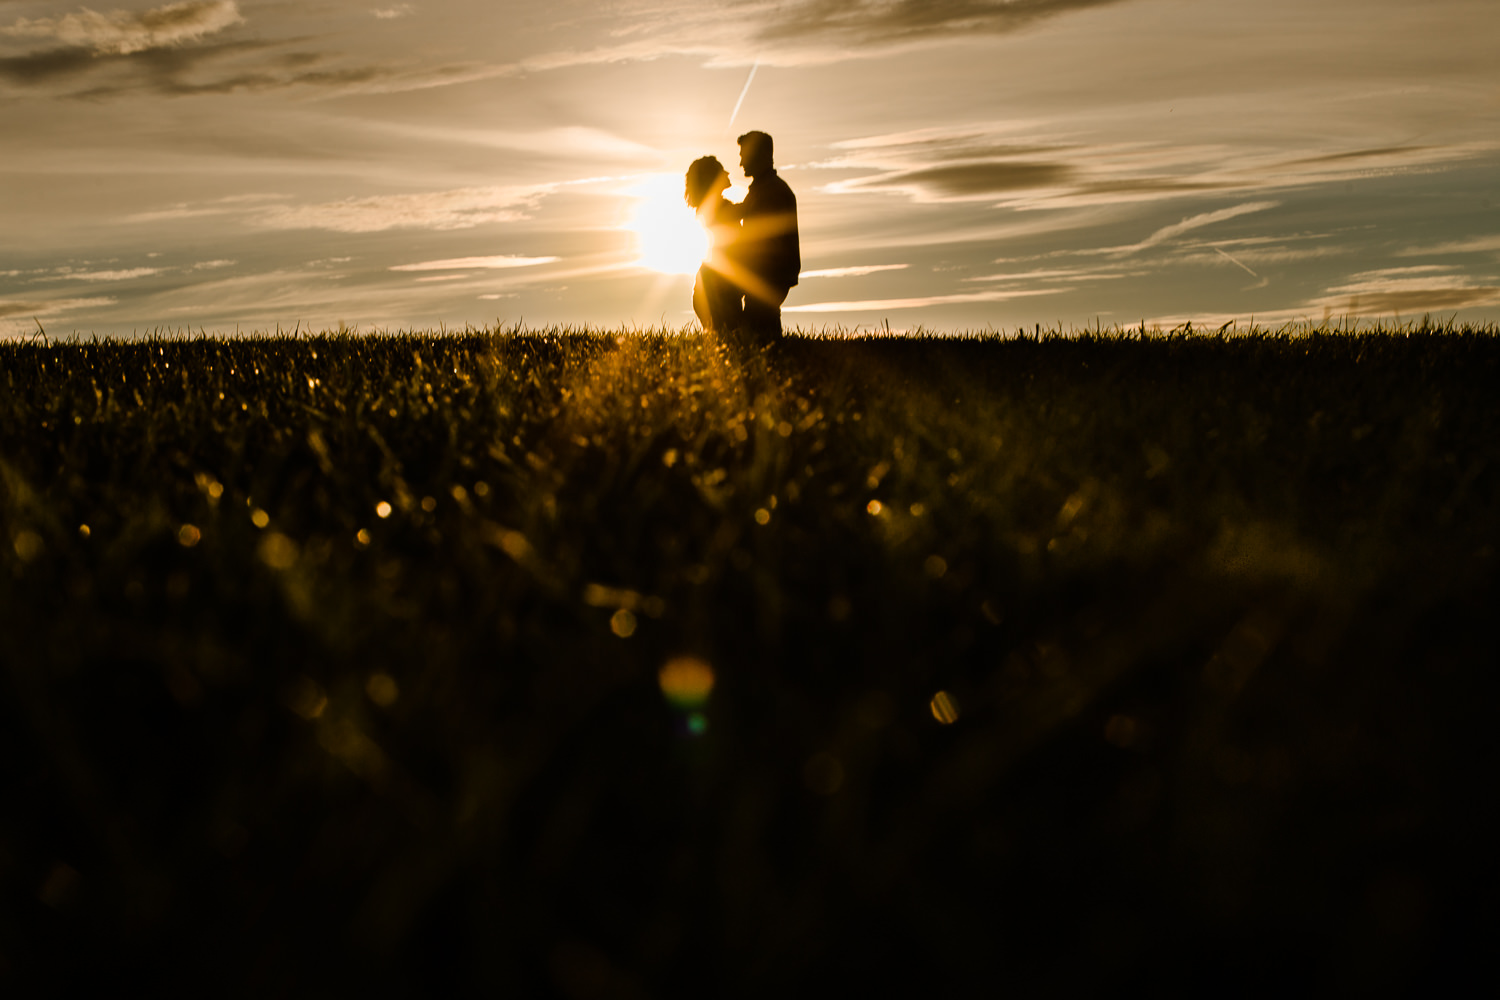 Starburst sunset with silhouette couple on a hill - Merseyside golden hour couple shoot